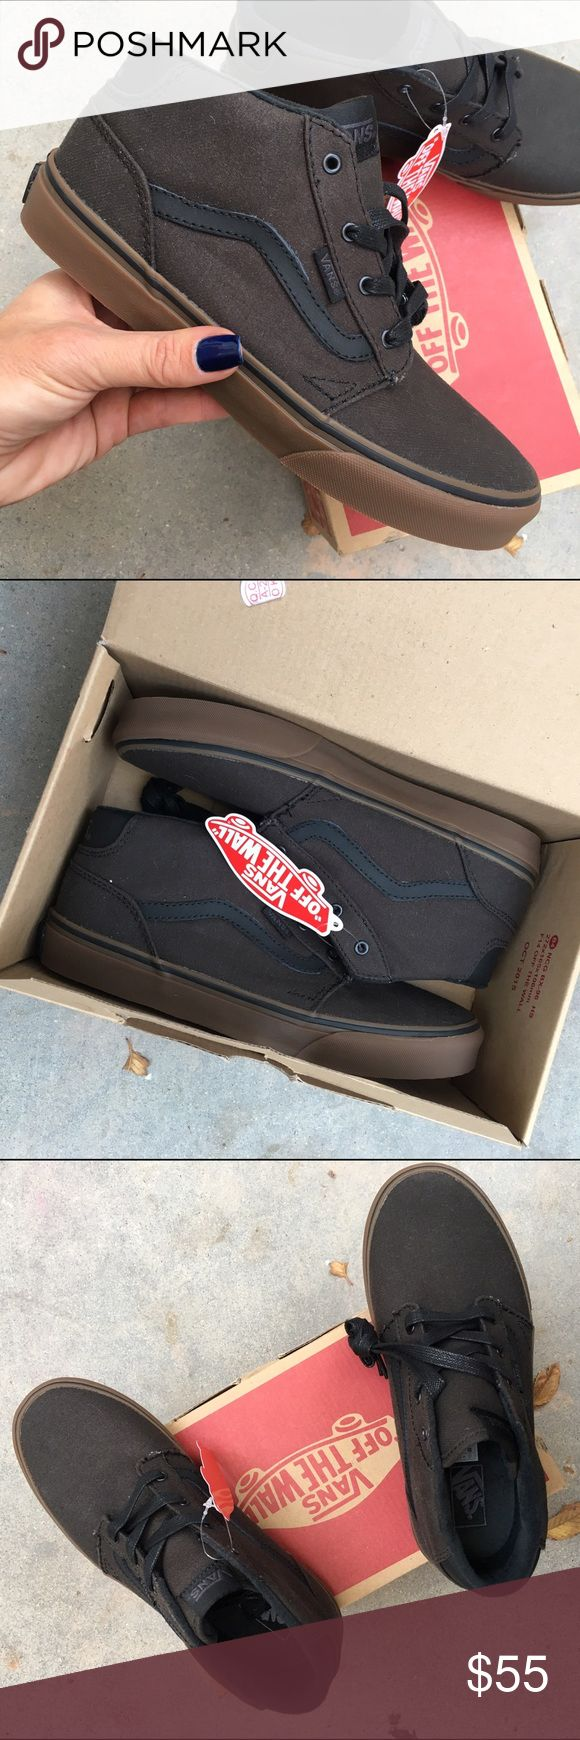 NWB 🎁 VANS 'CHAPMAN' mid top size 5 youth NEW never worn Vans 'Chapman' brown waxed canvas upper. Size 5 youth  Ships same or next day from my smoke free home w/ original box. Perfect for gift giving! 🎁  Bundle items to save.   PRICE FIRM. 100% authentic product purchased directly from NIKE Vans Shoes Sneakers